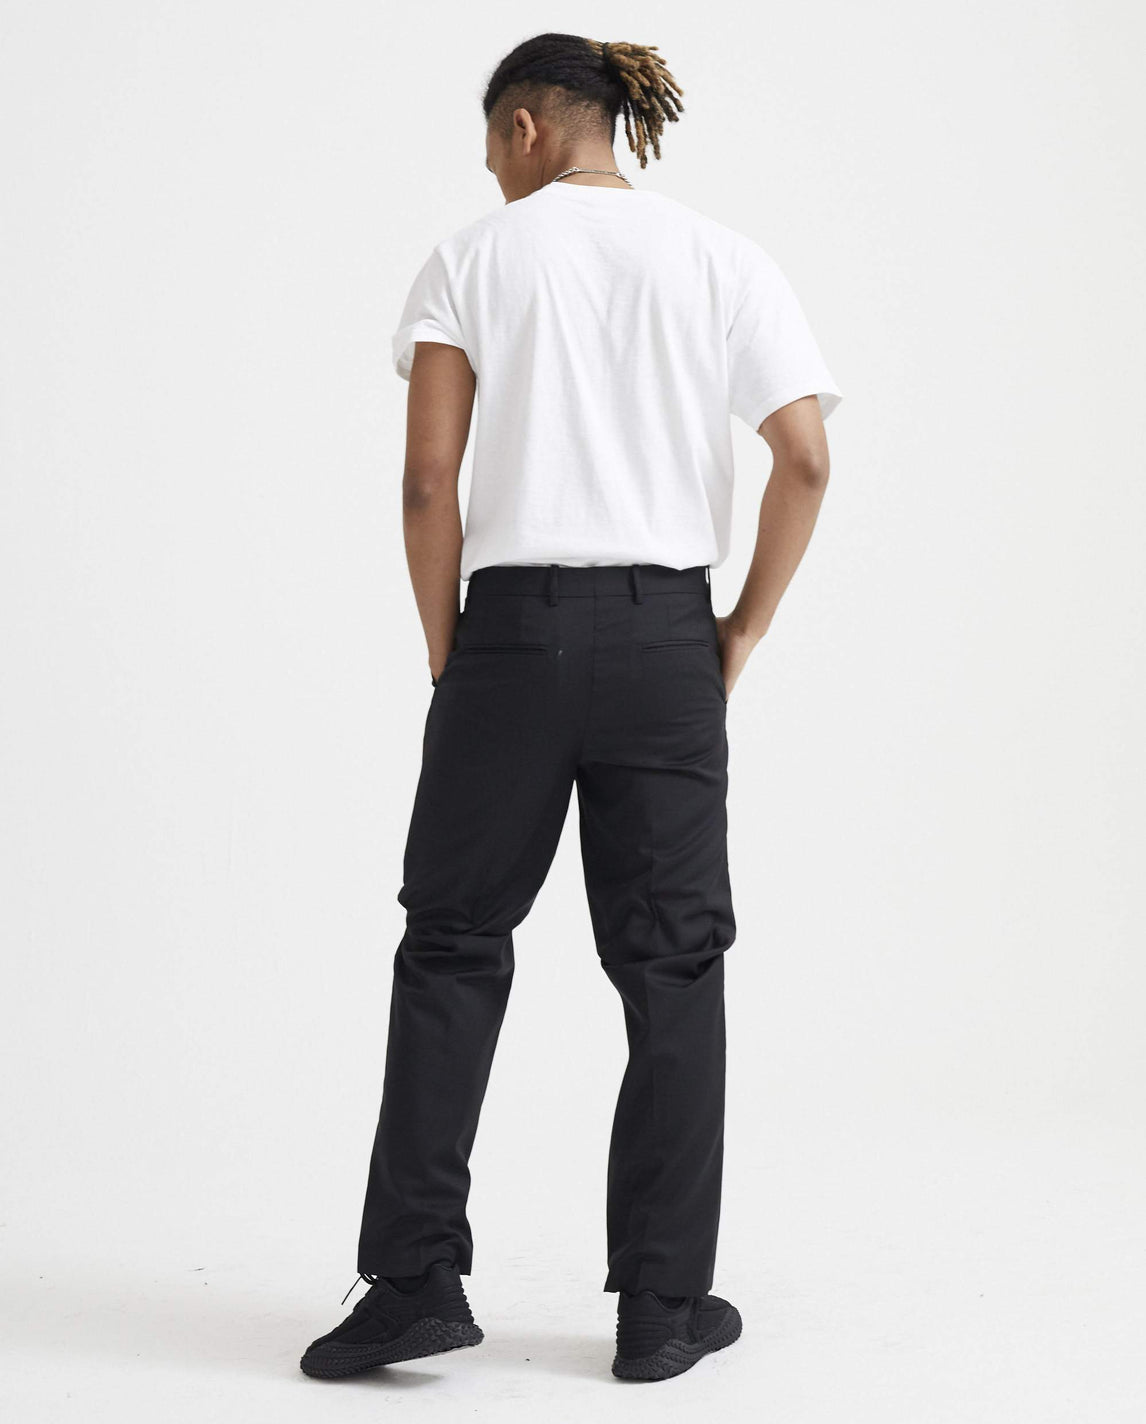 Tuuwa Trousers - Black MENS NAMACHEKO